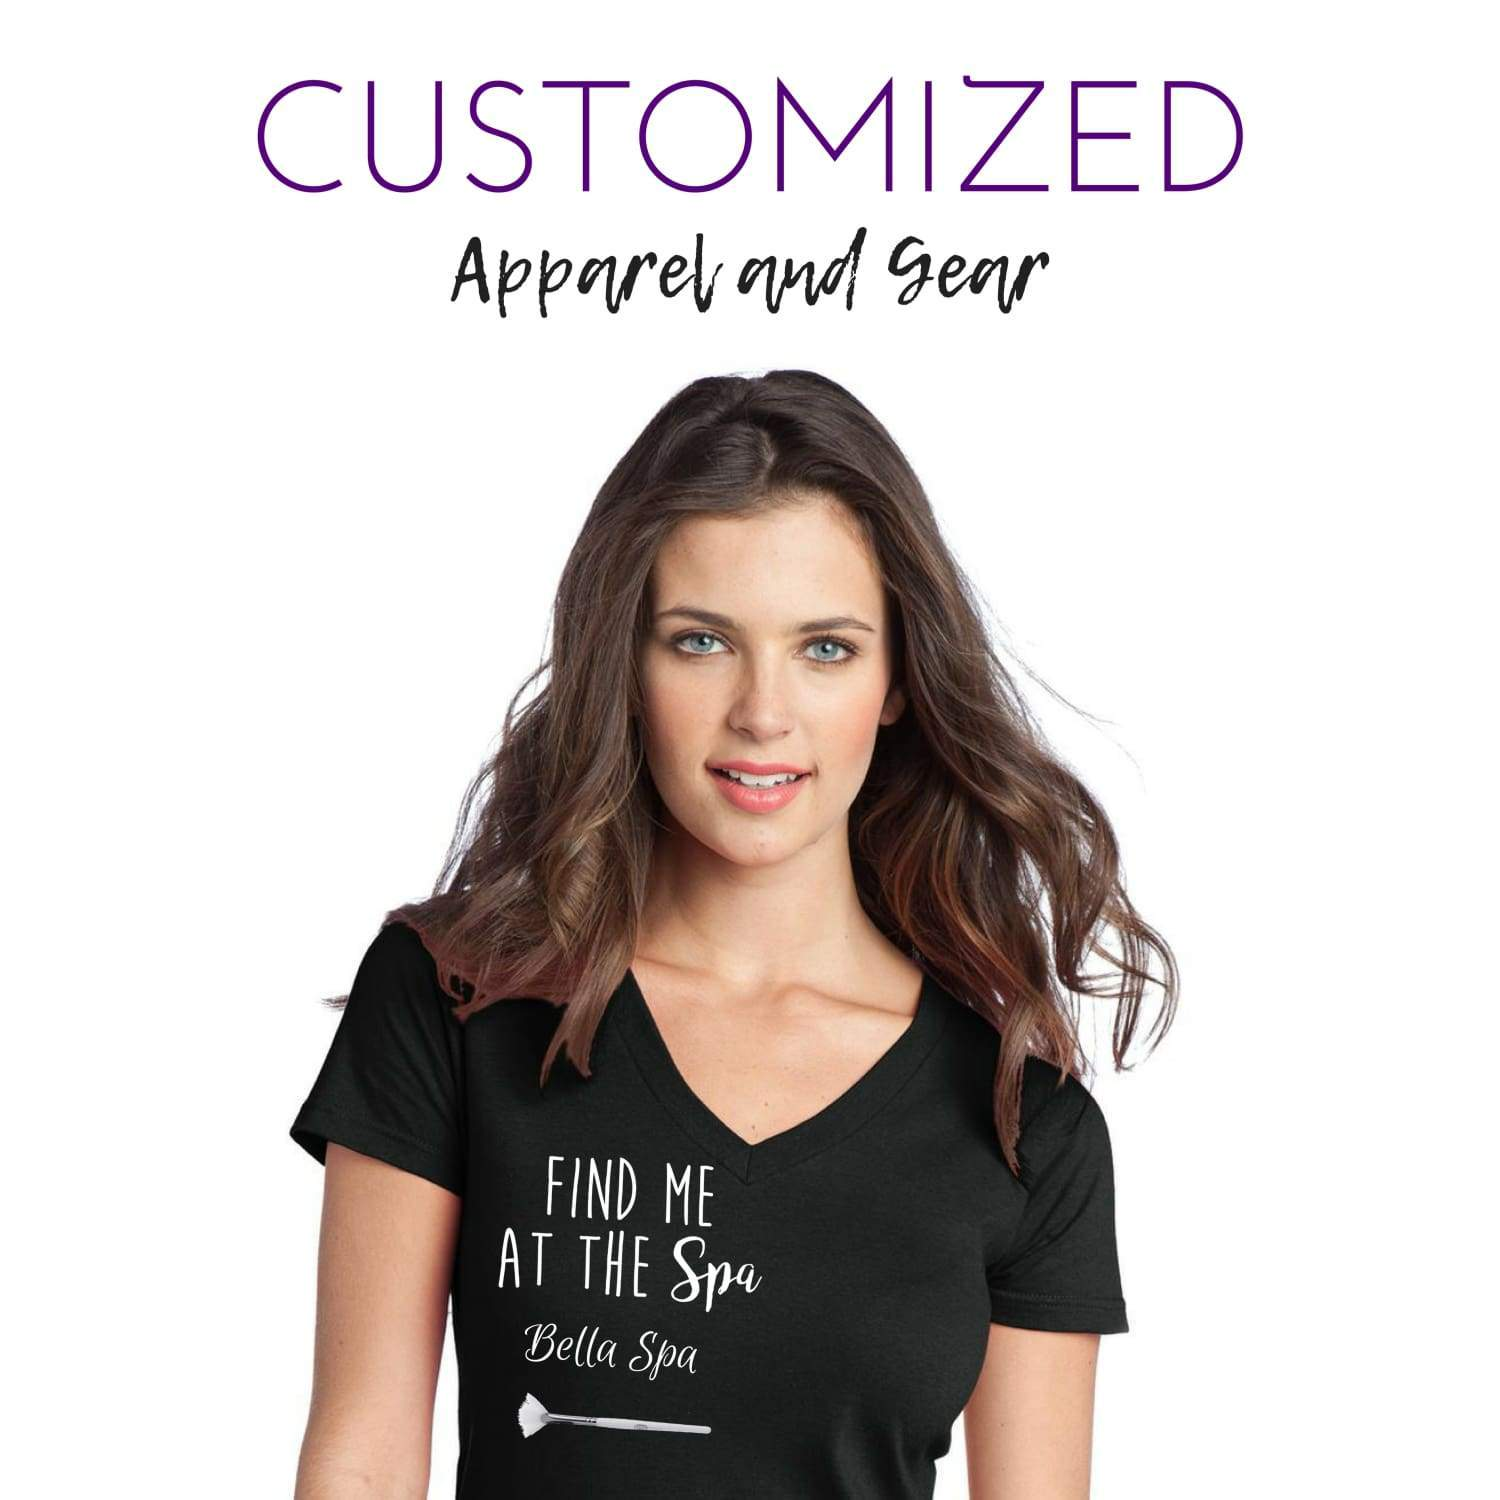 Customized Apparel and Gear